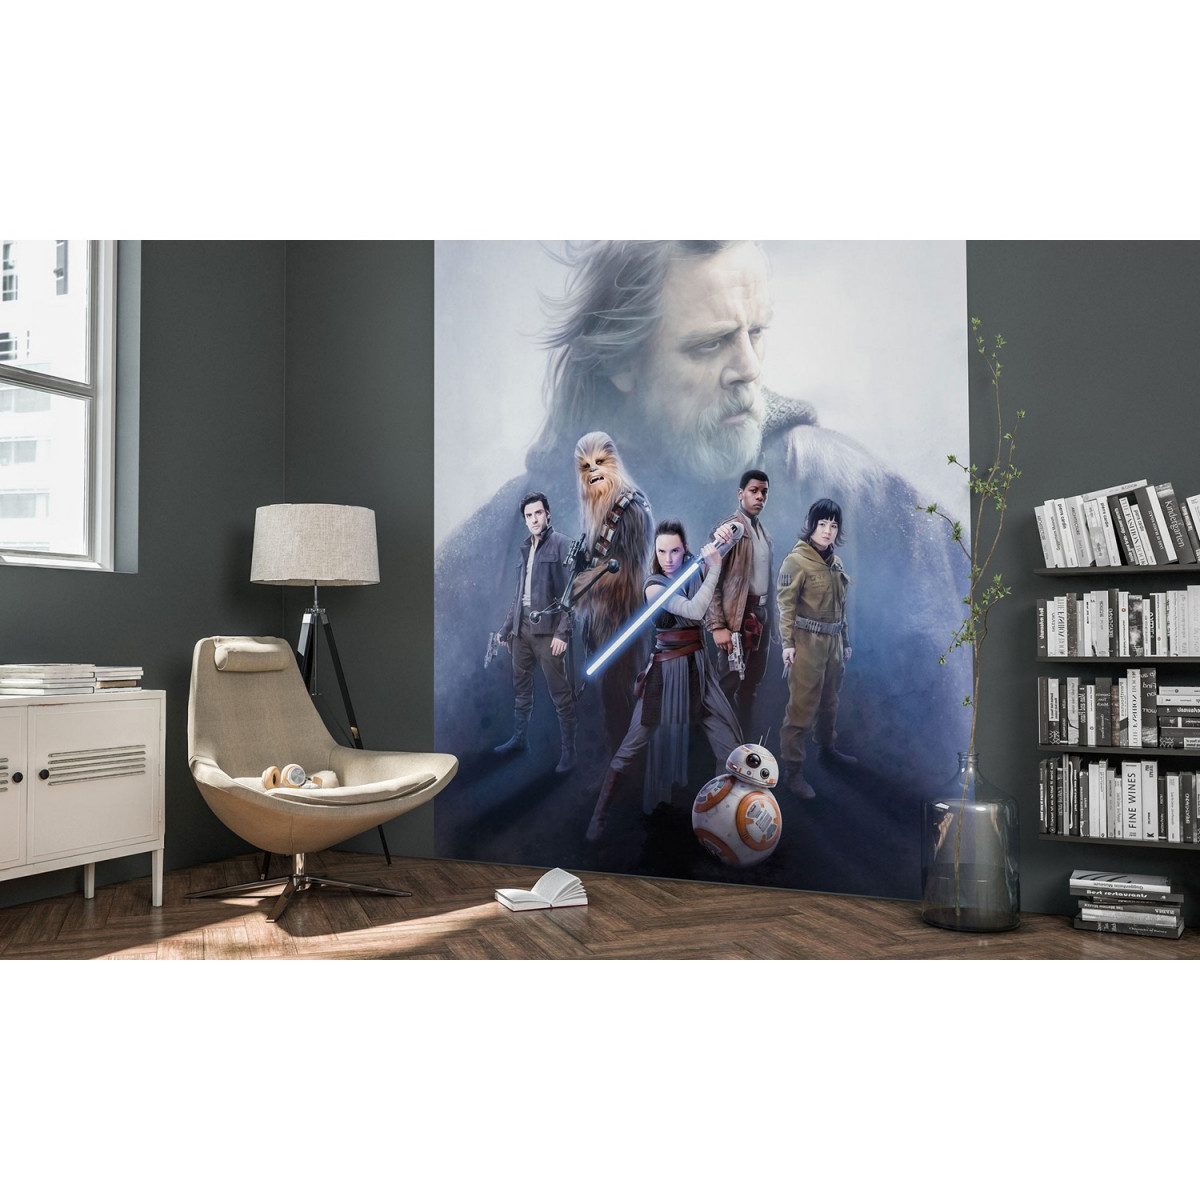 Poster XXL Chevalier Jedi Star Wars en situation